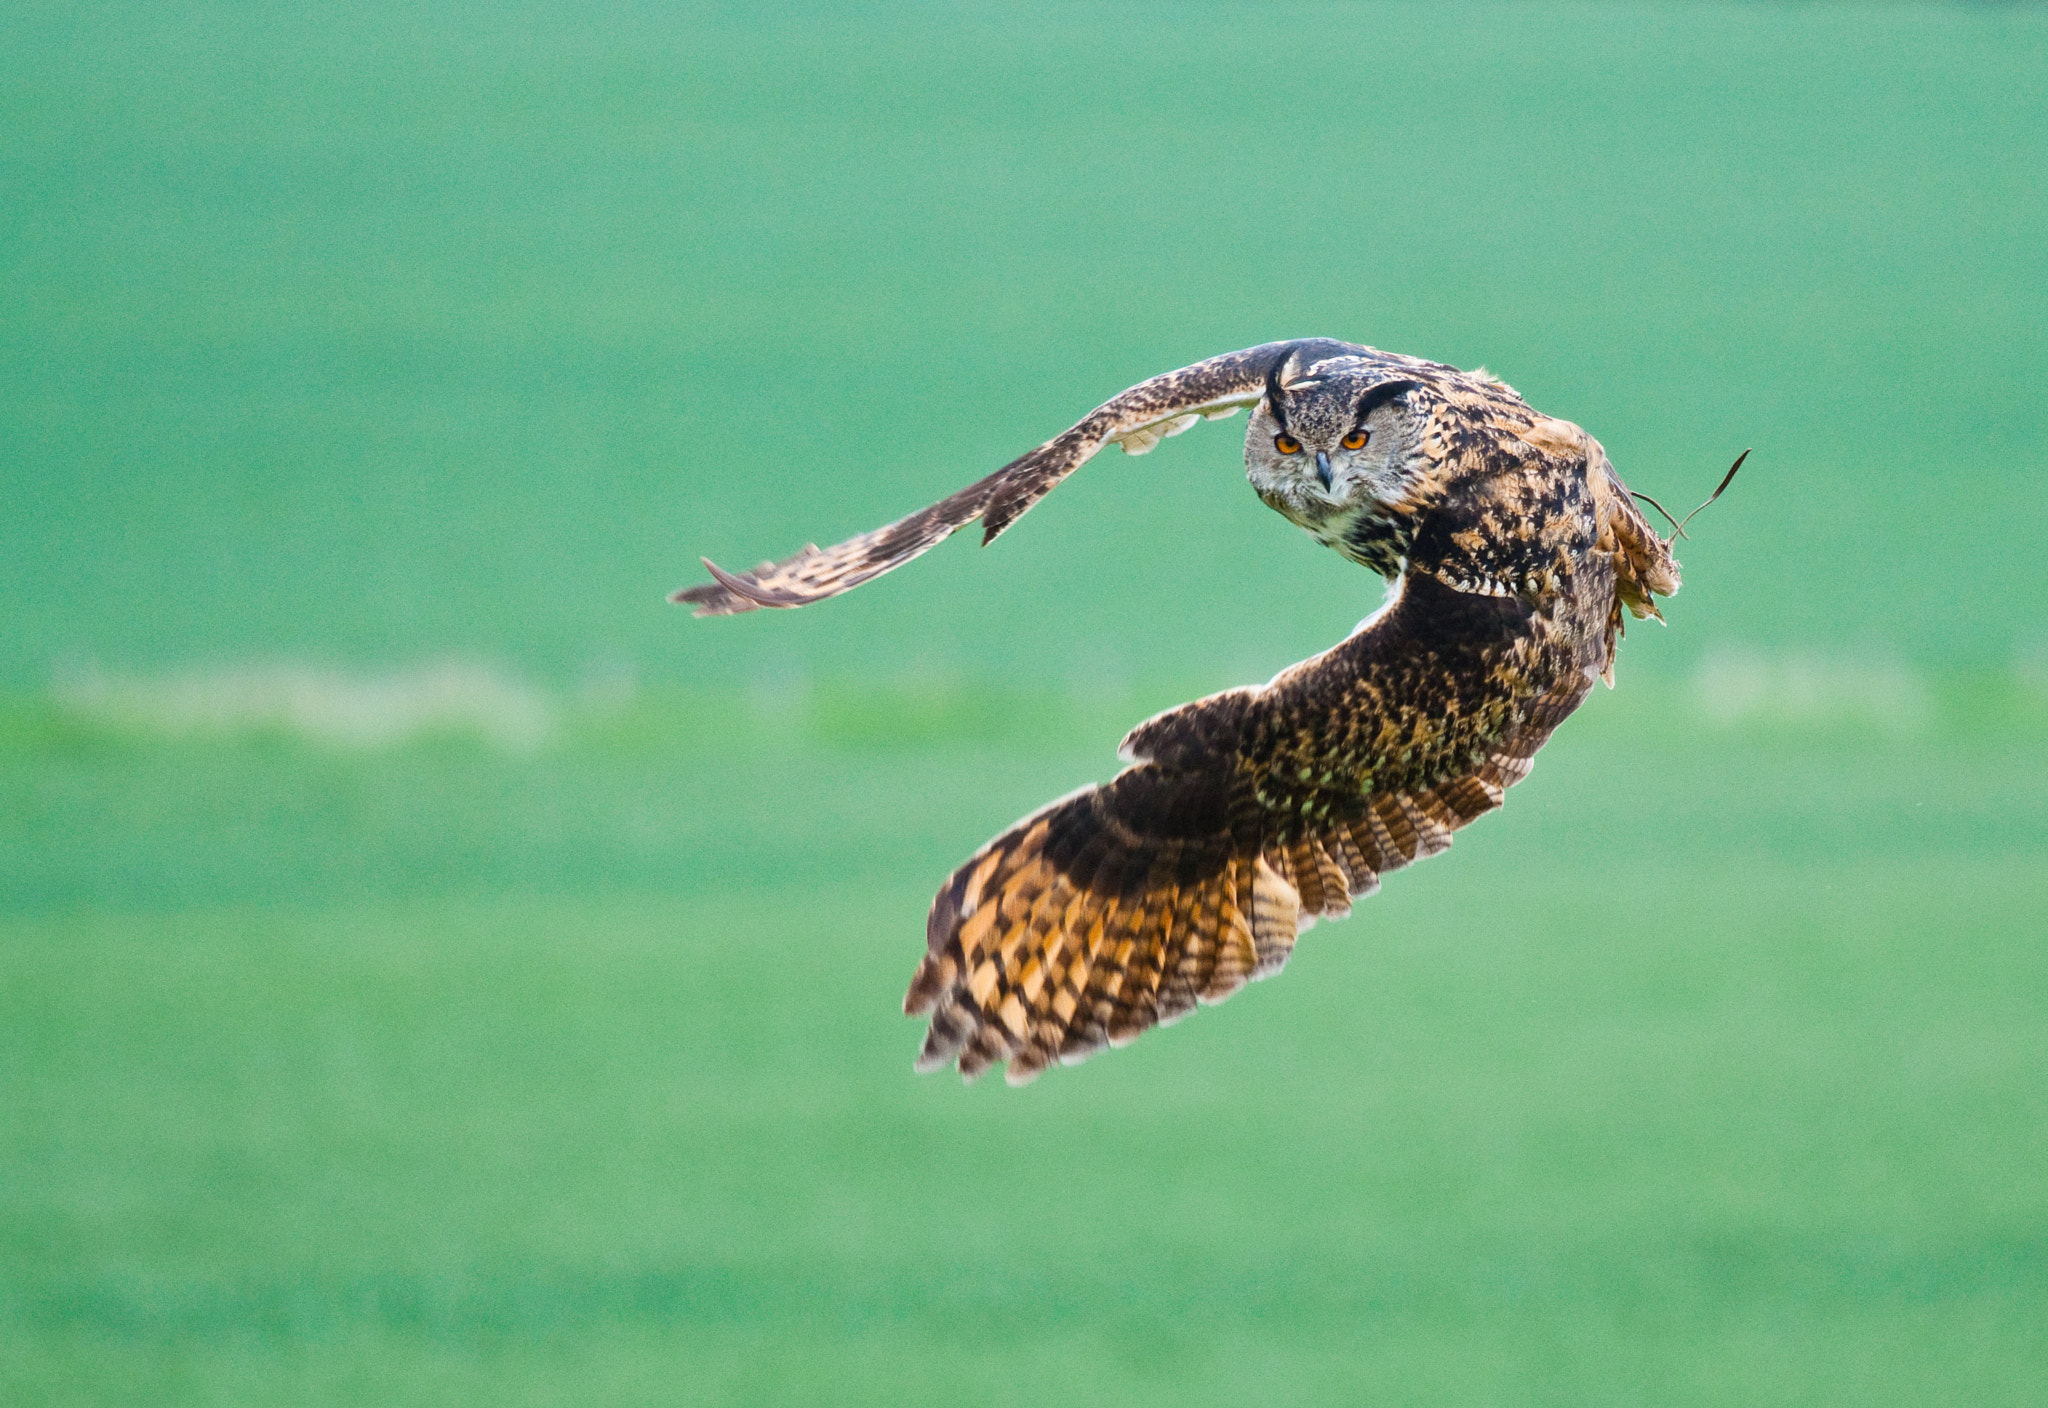 Photograph Eagle owl take off by Luke Millward on 500px